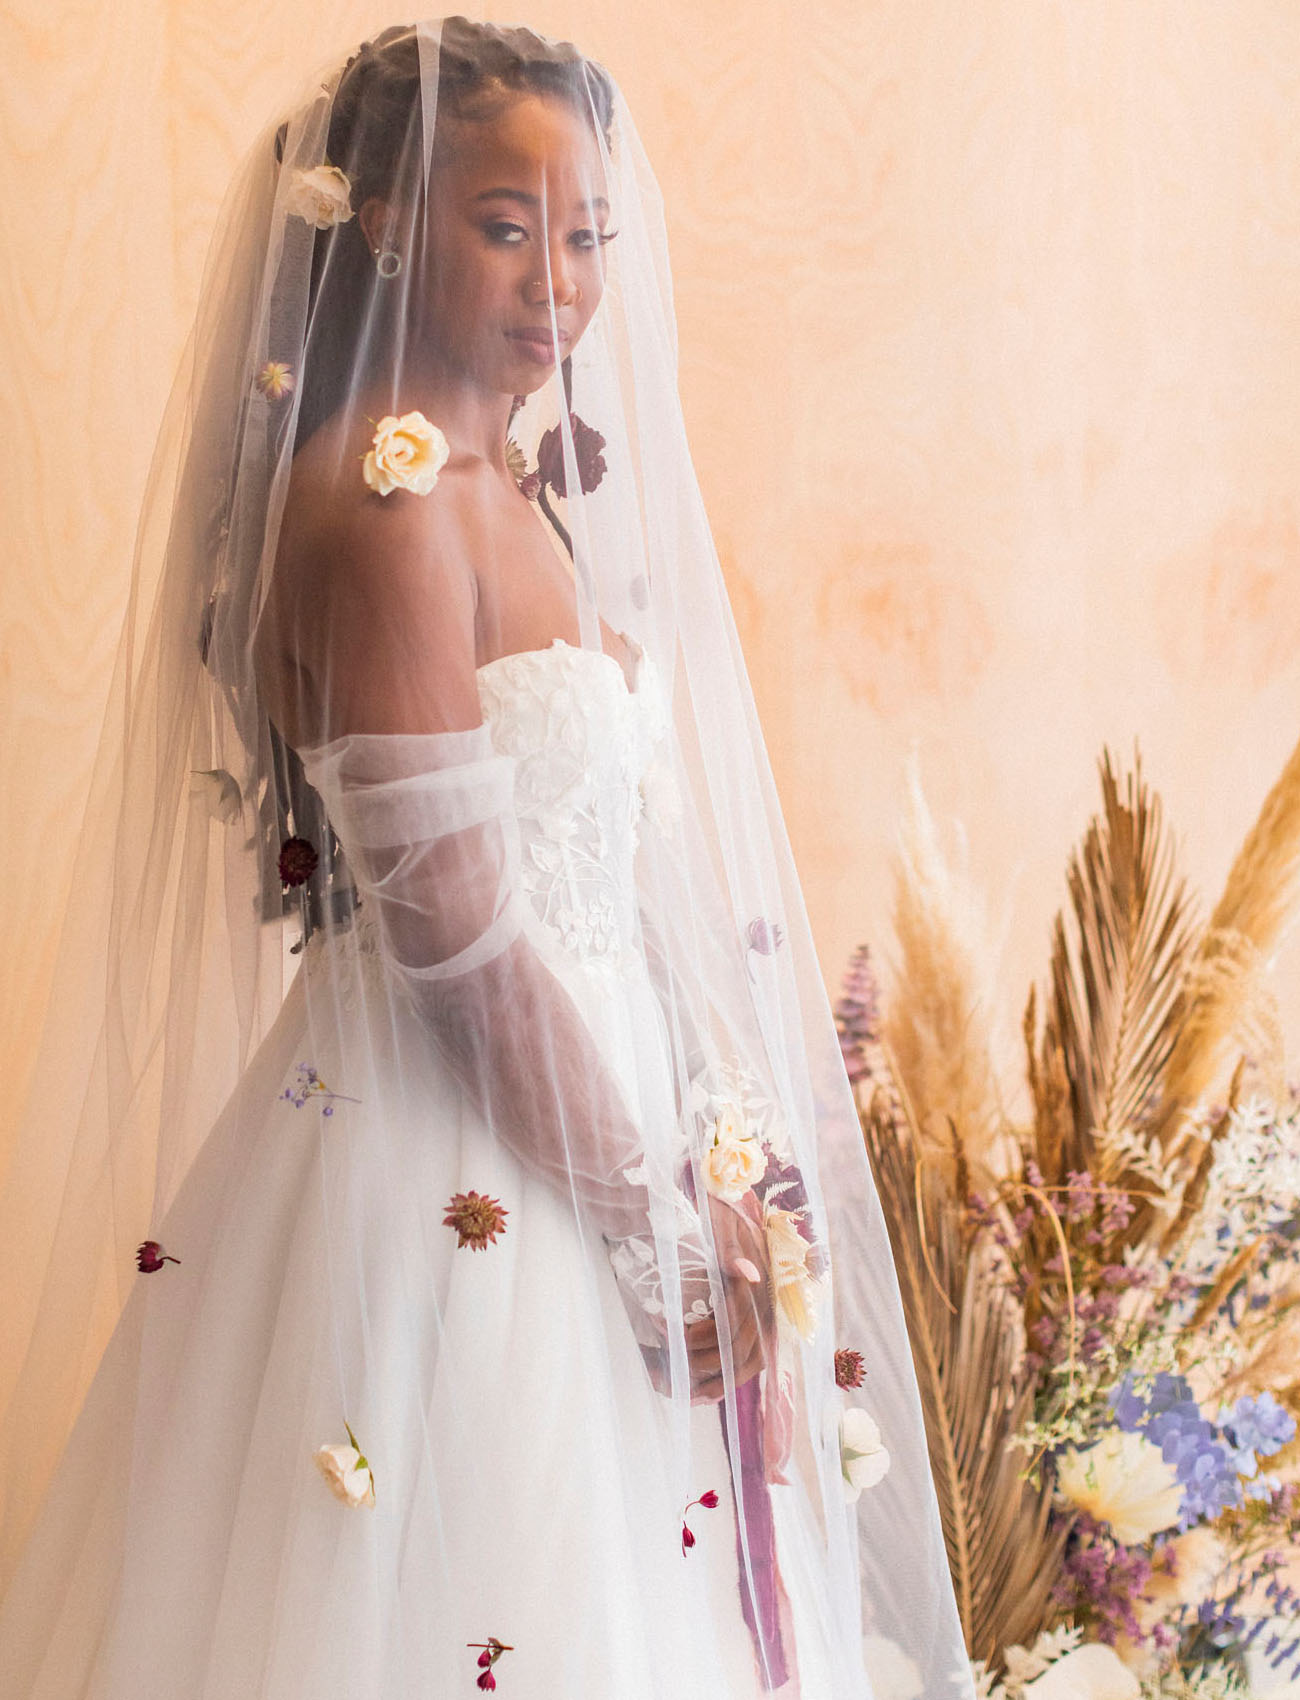 The veil was also done with dried and fresh blooms